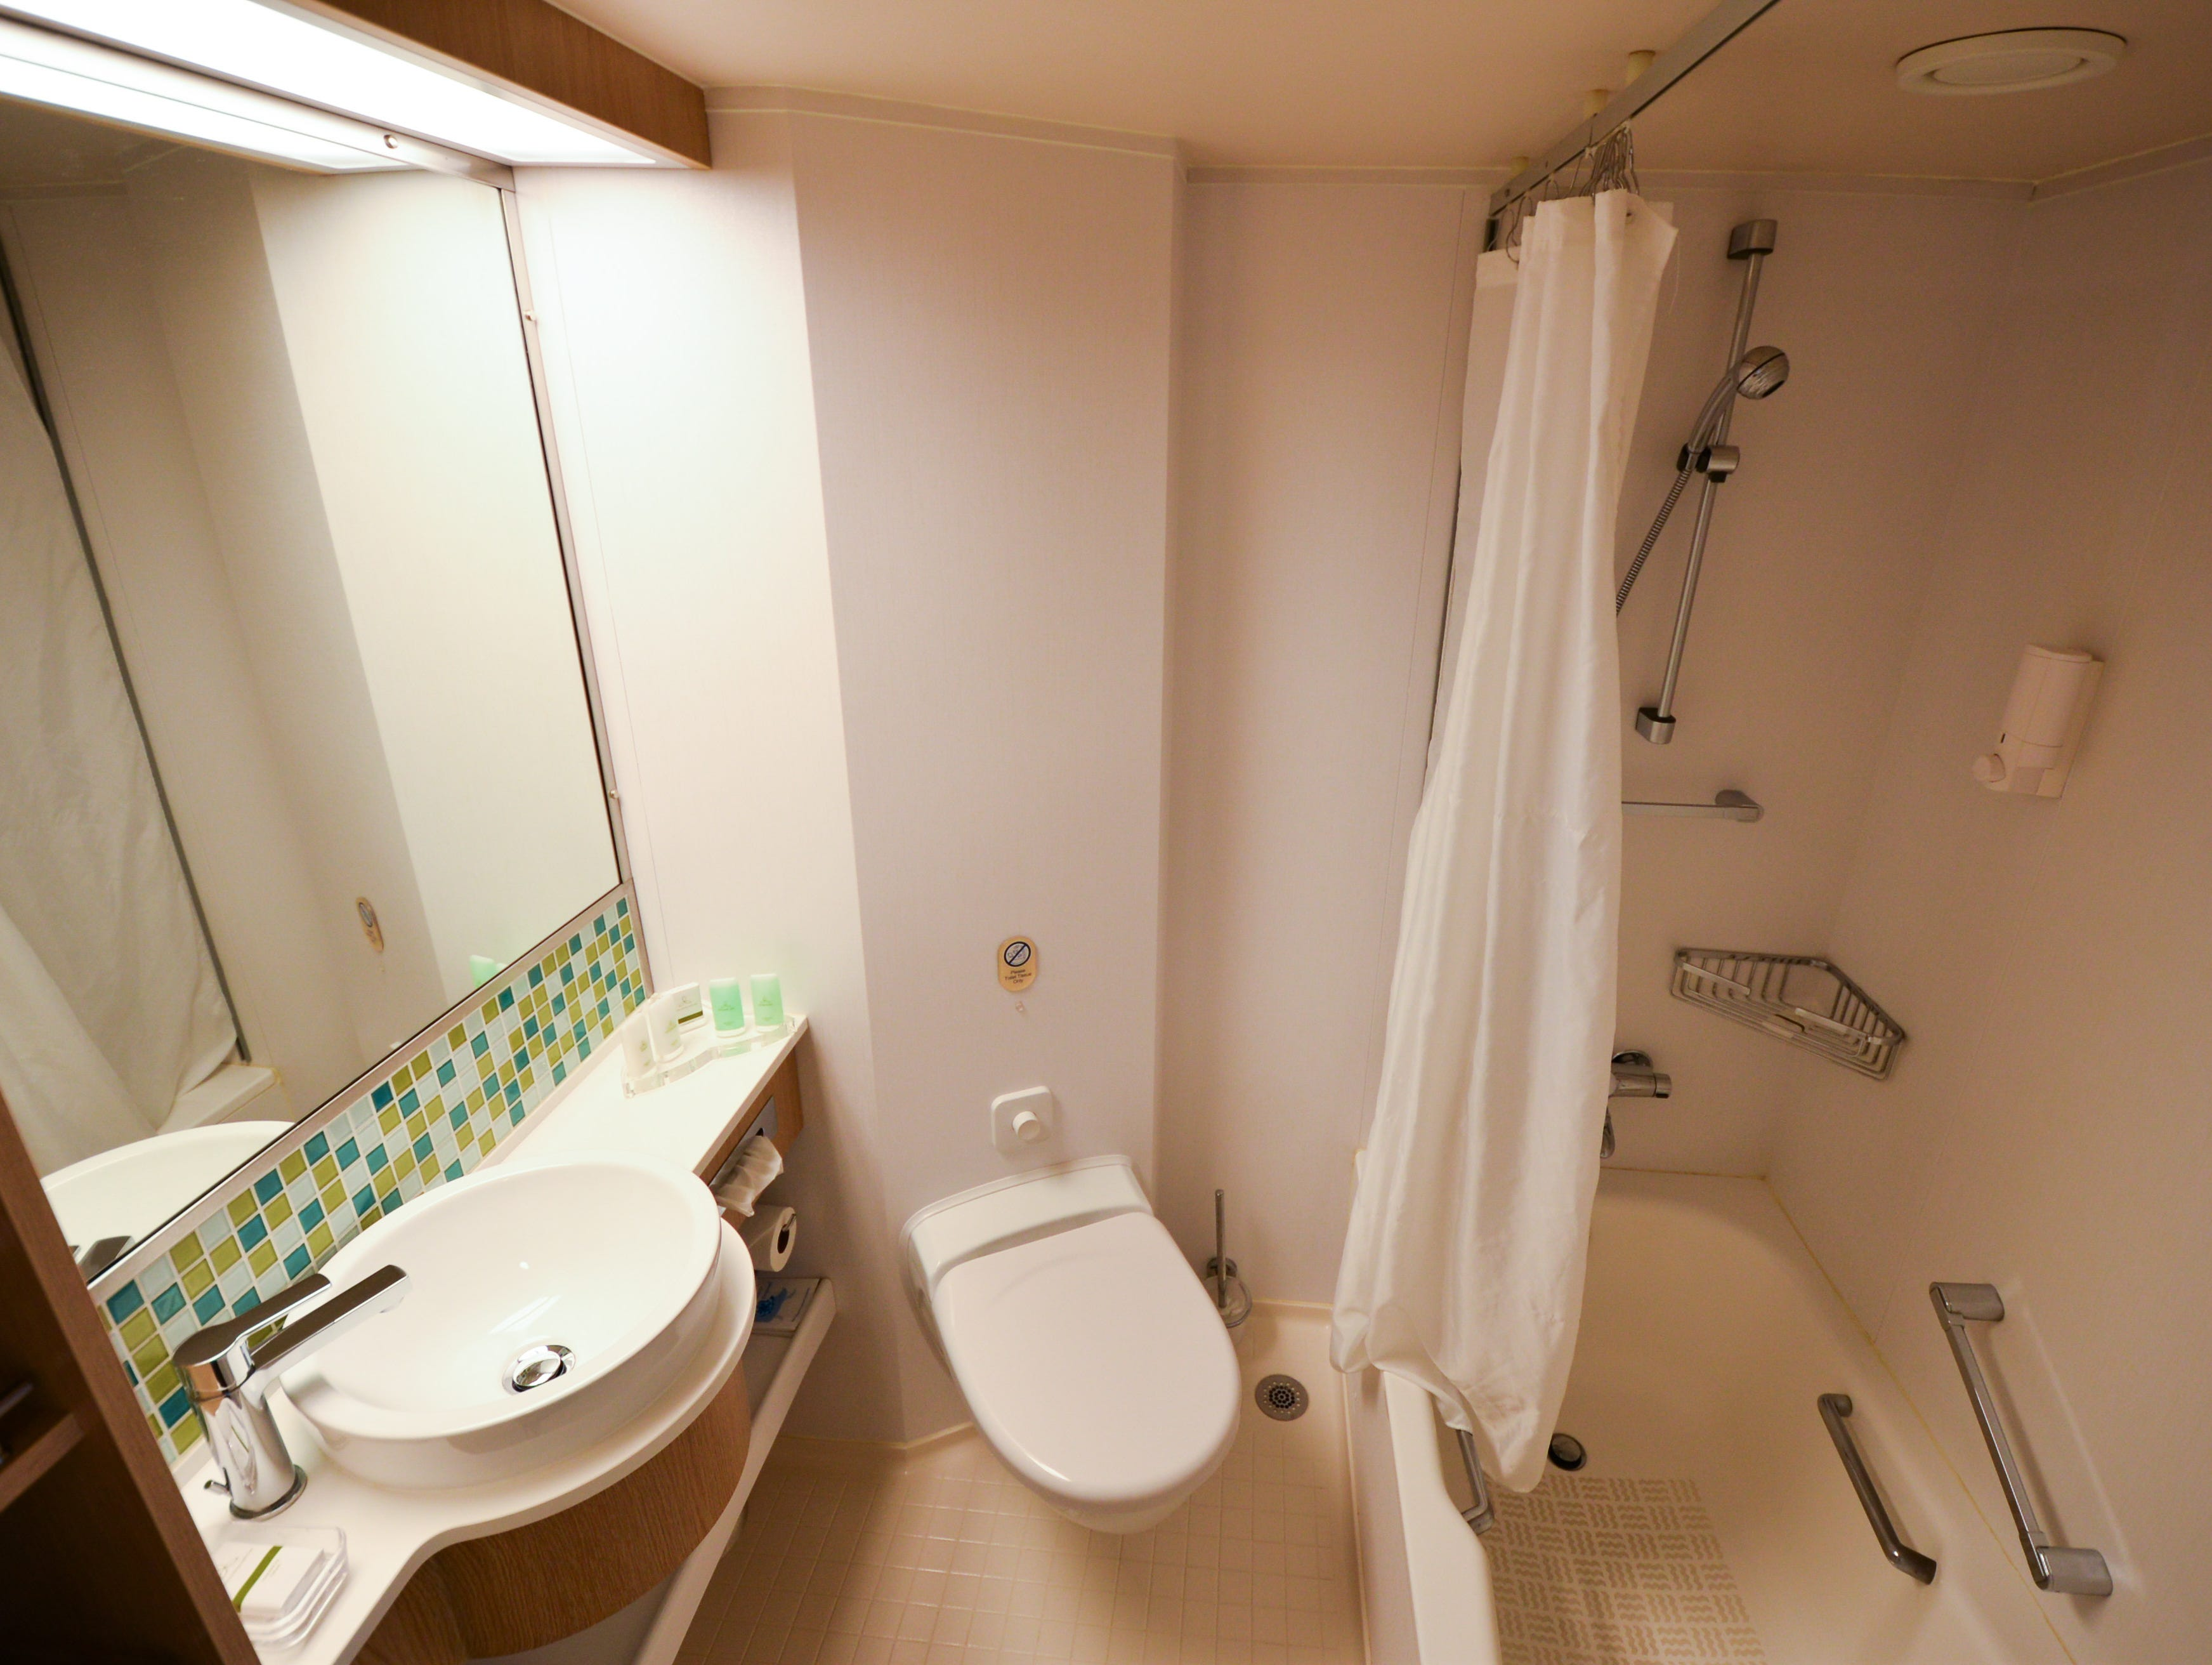 Junior suite bathrooms include bathtubs, which aren't found in standard Ocean View cabins.